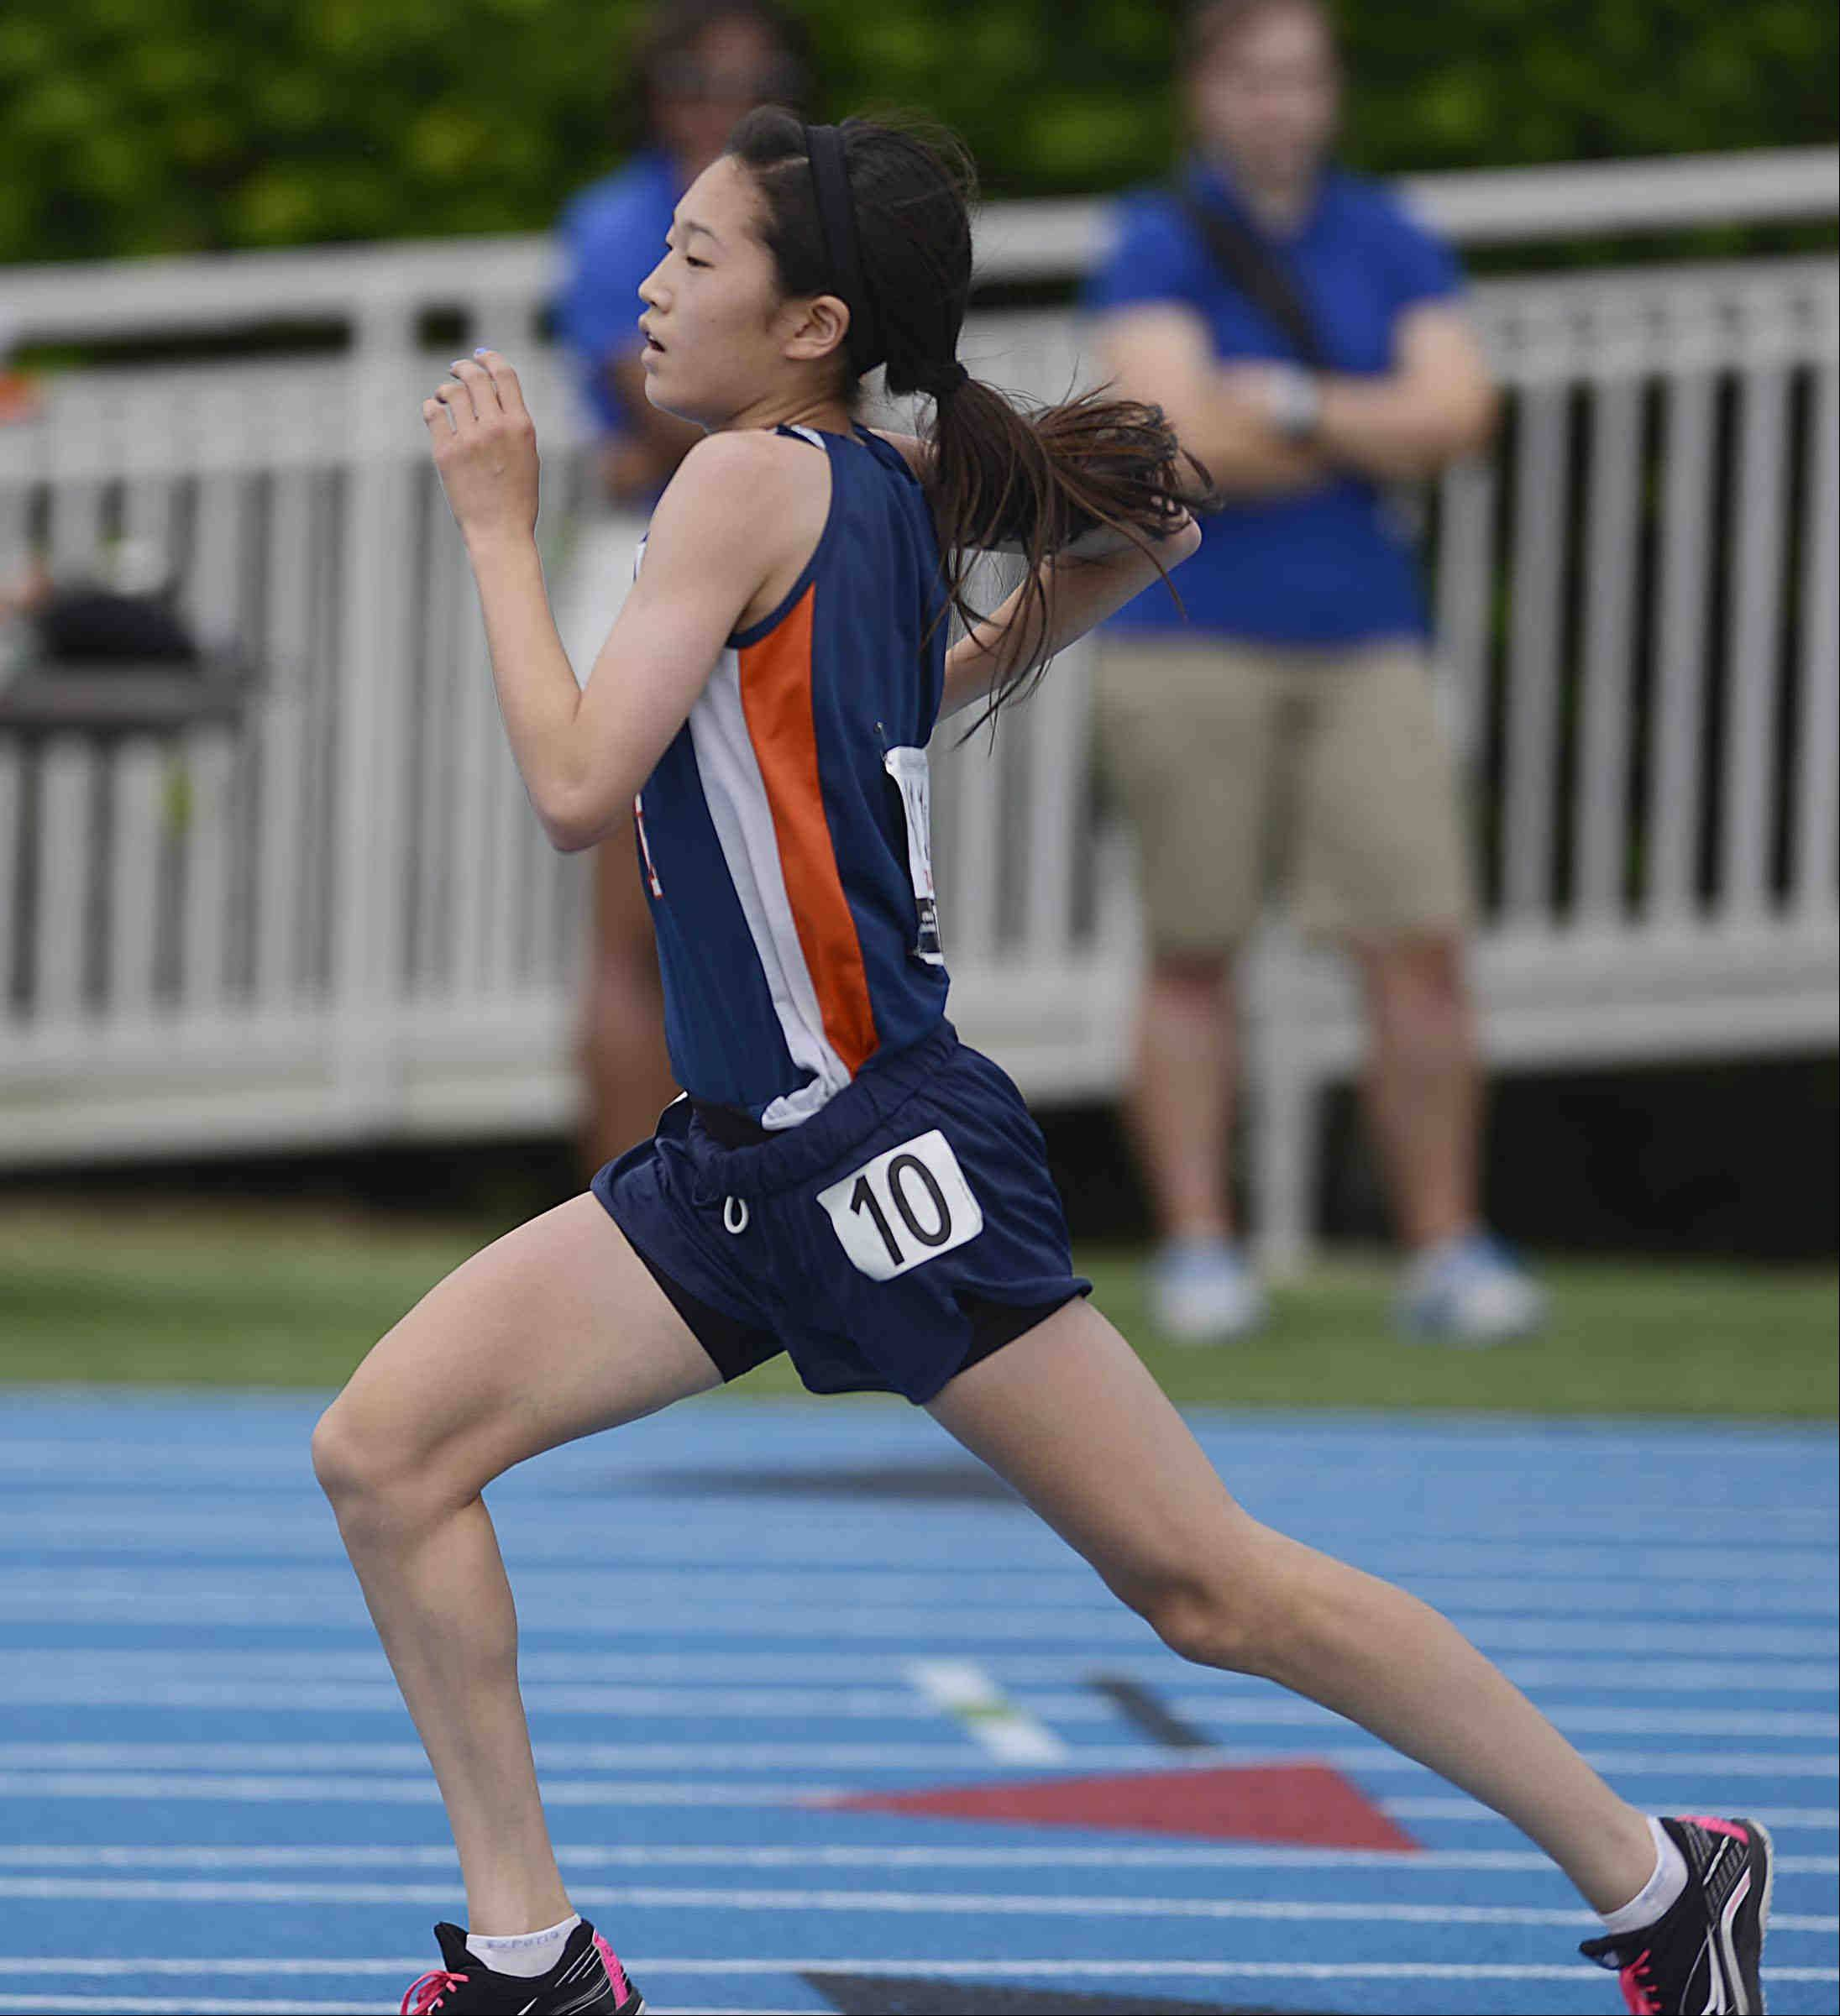 Buffalo Grove freshman Kaitlyn Ko wins her heat of the 1,600-meter run Saturday at the Class 3A girls track and field state finals at O'Brien Stadium on the campus of Eastern Illinois University in Charleston.